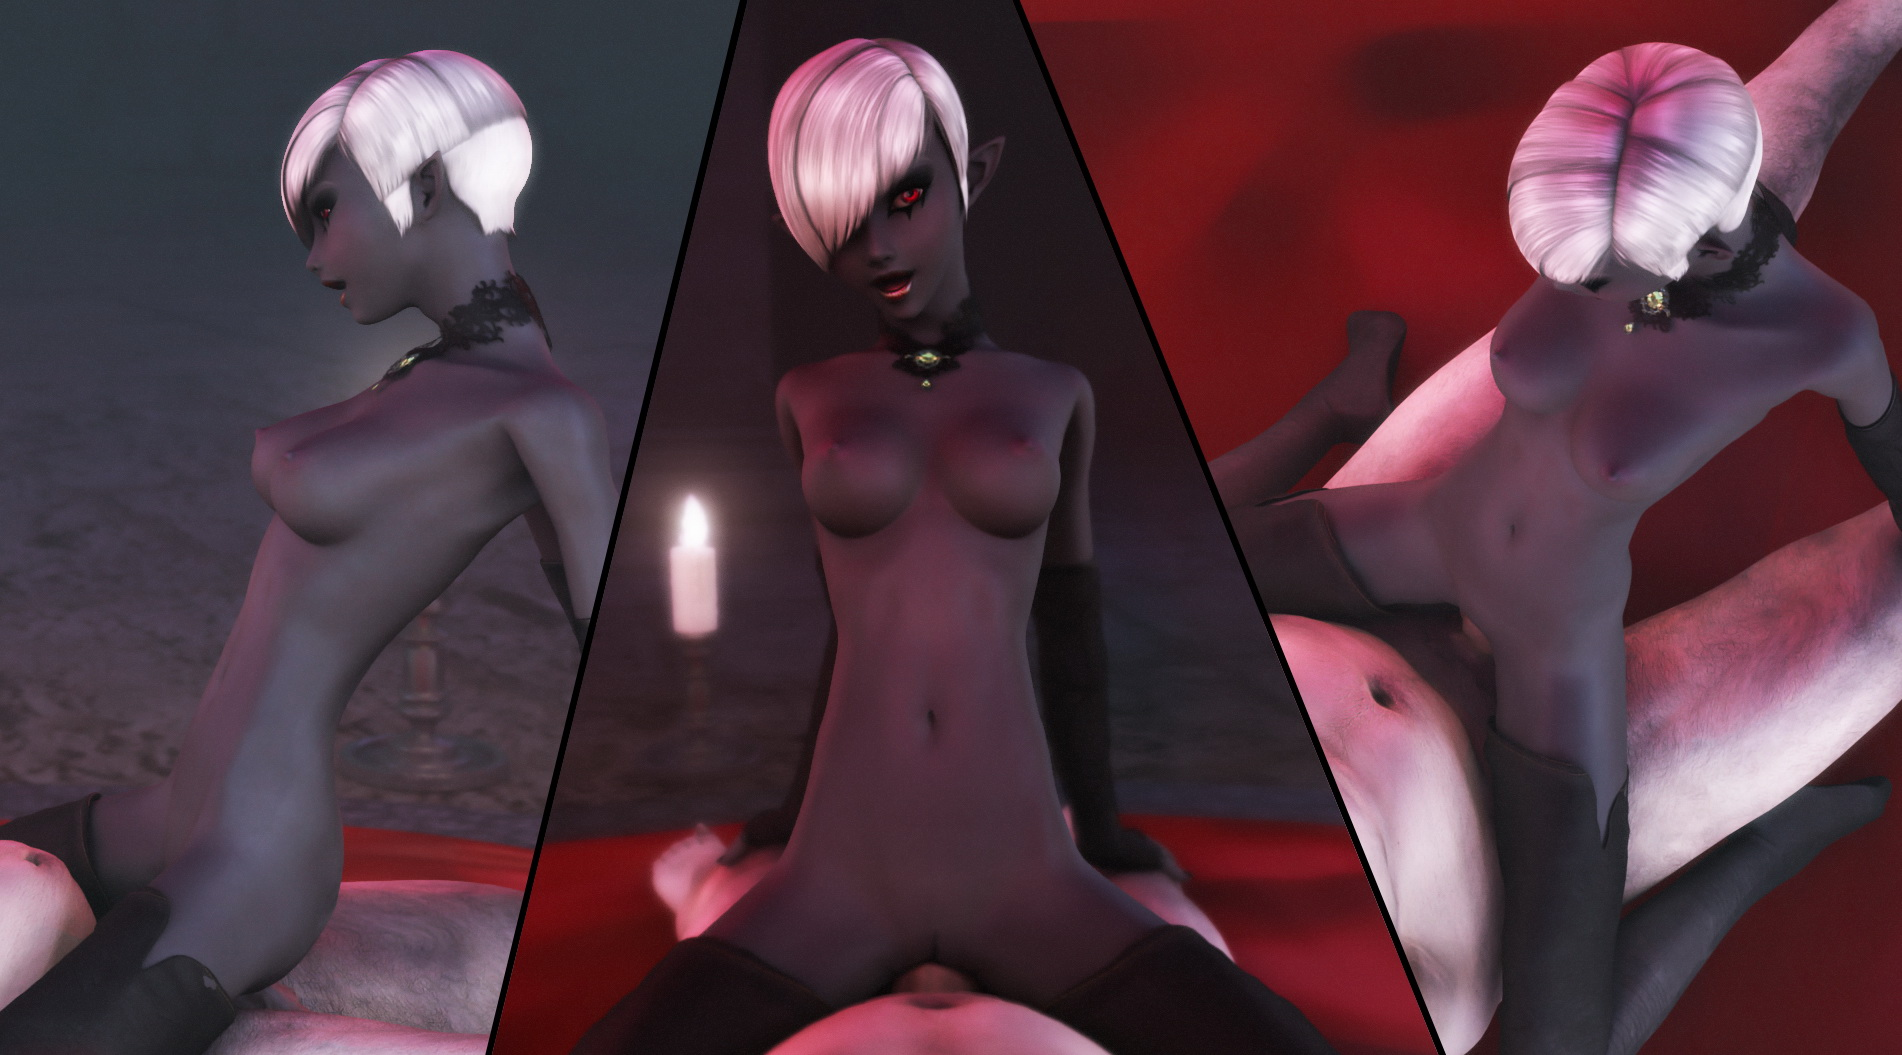 Dark elf hentai videos nackt clips